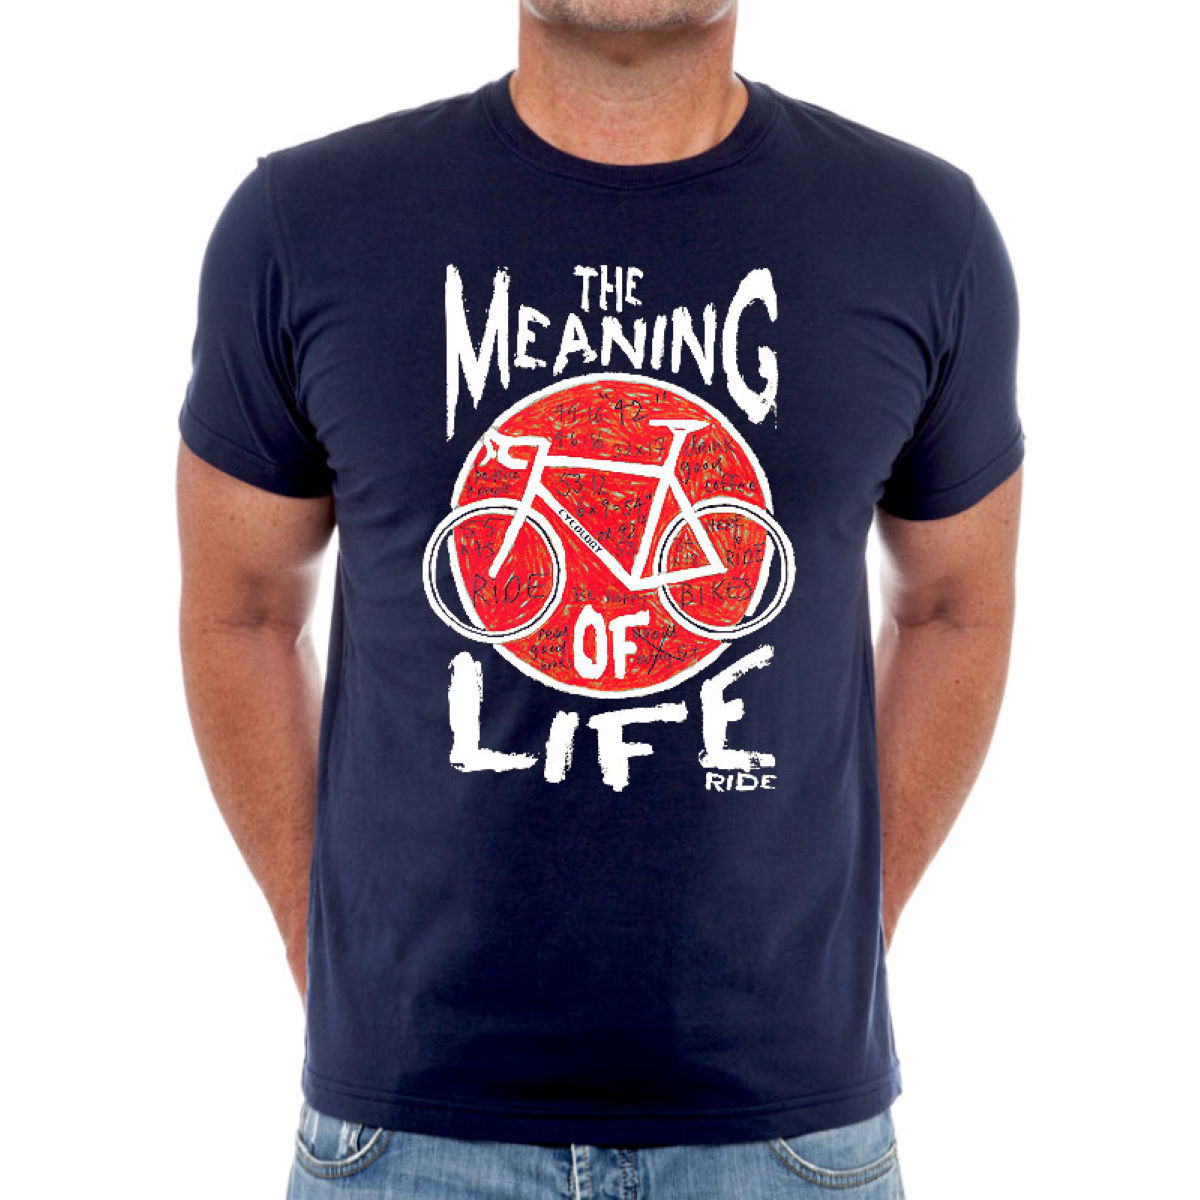 Cycology Cycology Meaning of Life T-Shirt   T-Shirts